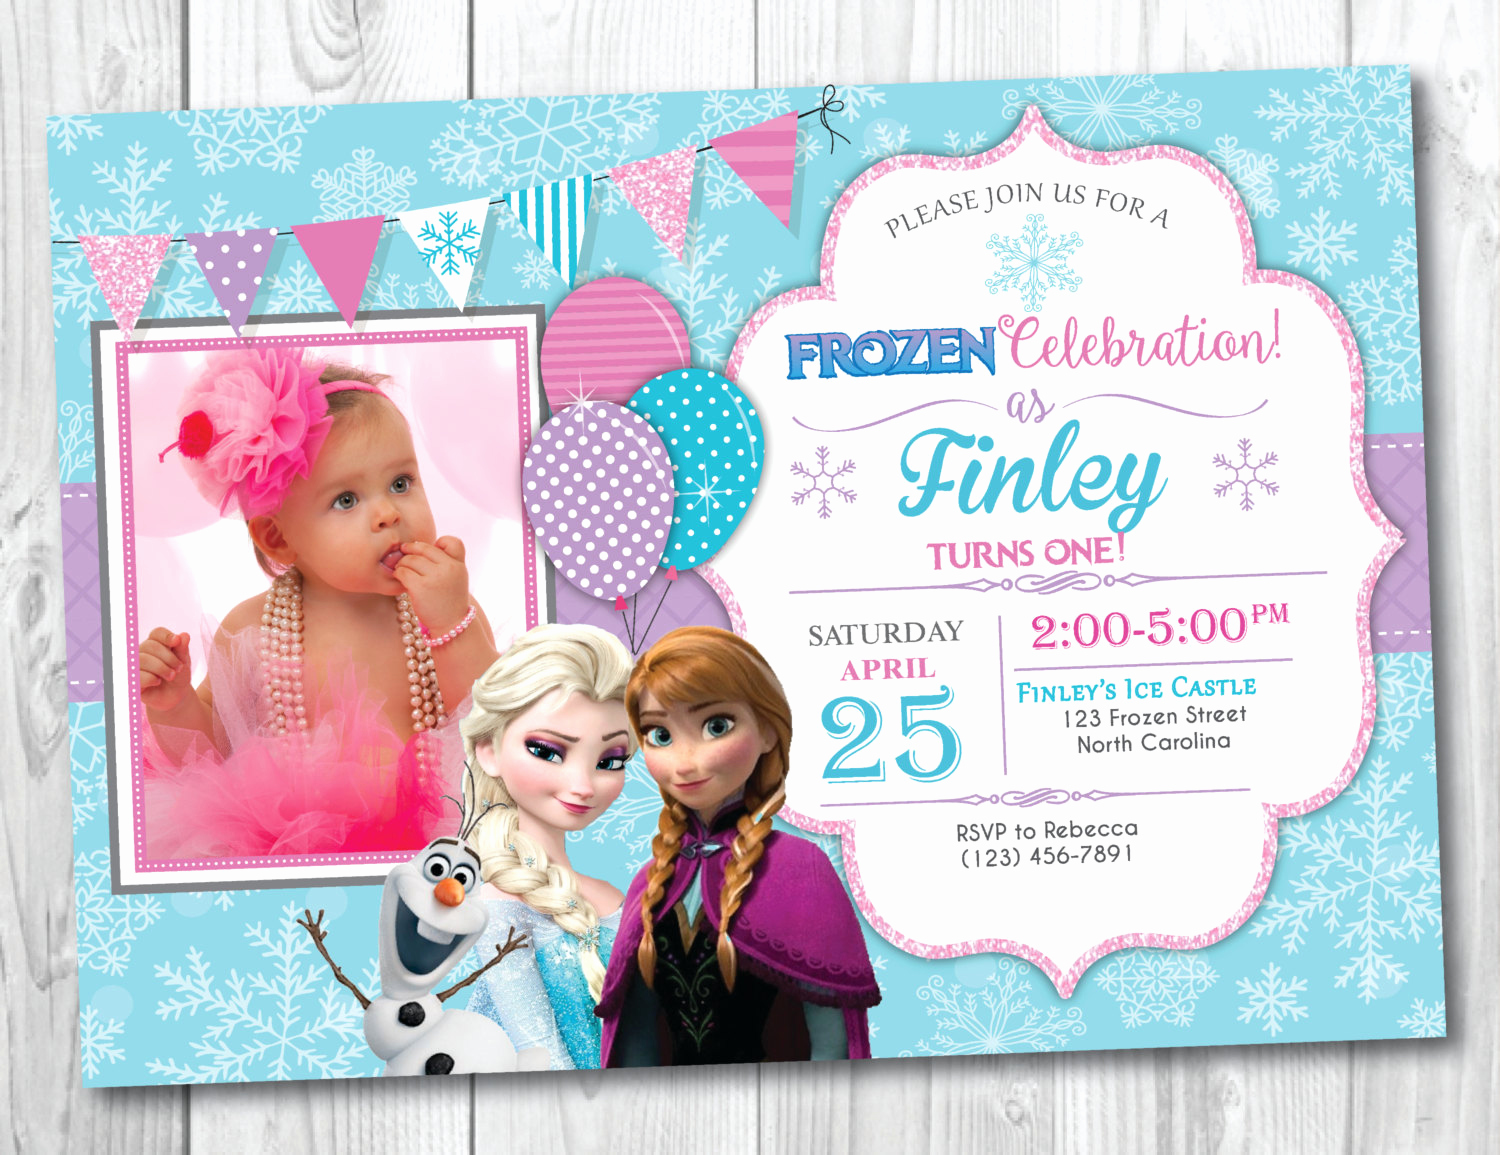 Frozen Bday Party Invitations Best Of Frozen Birthday Invitation Printable with Frozen